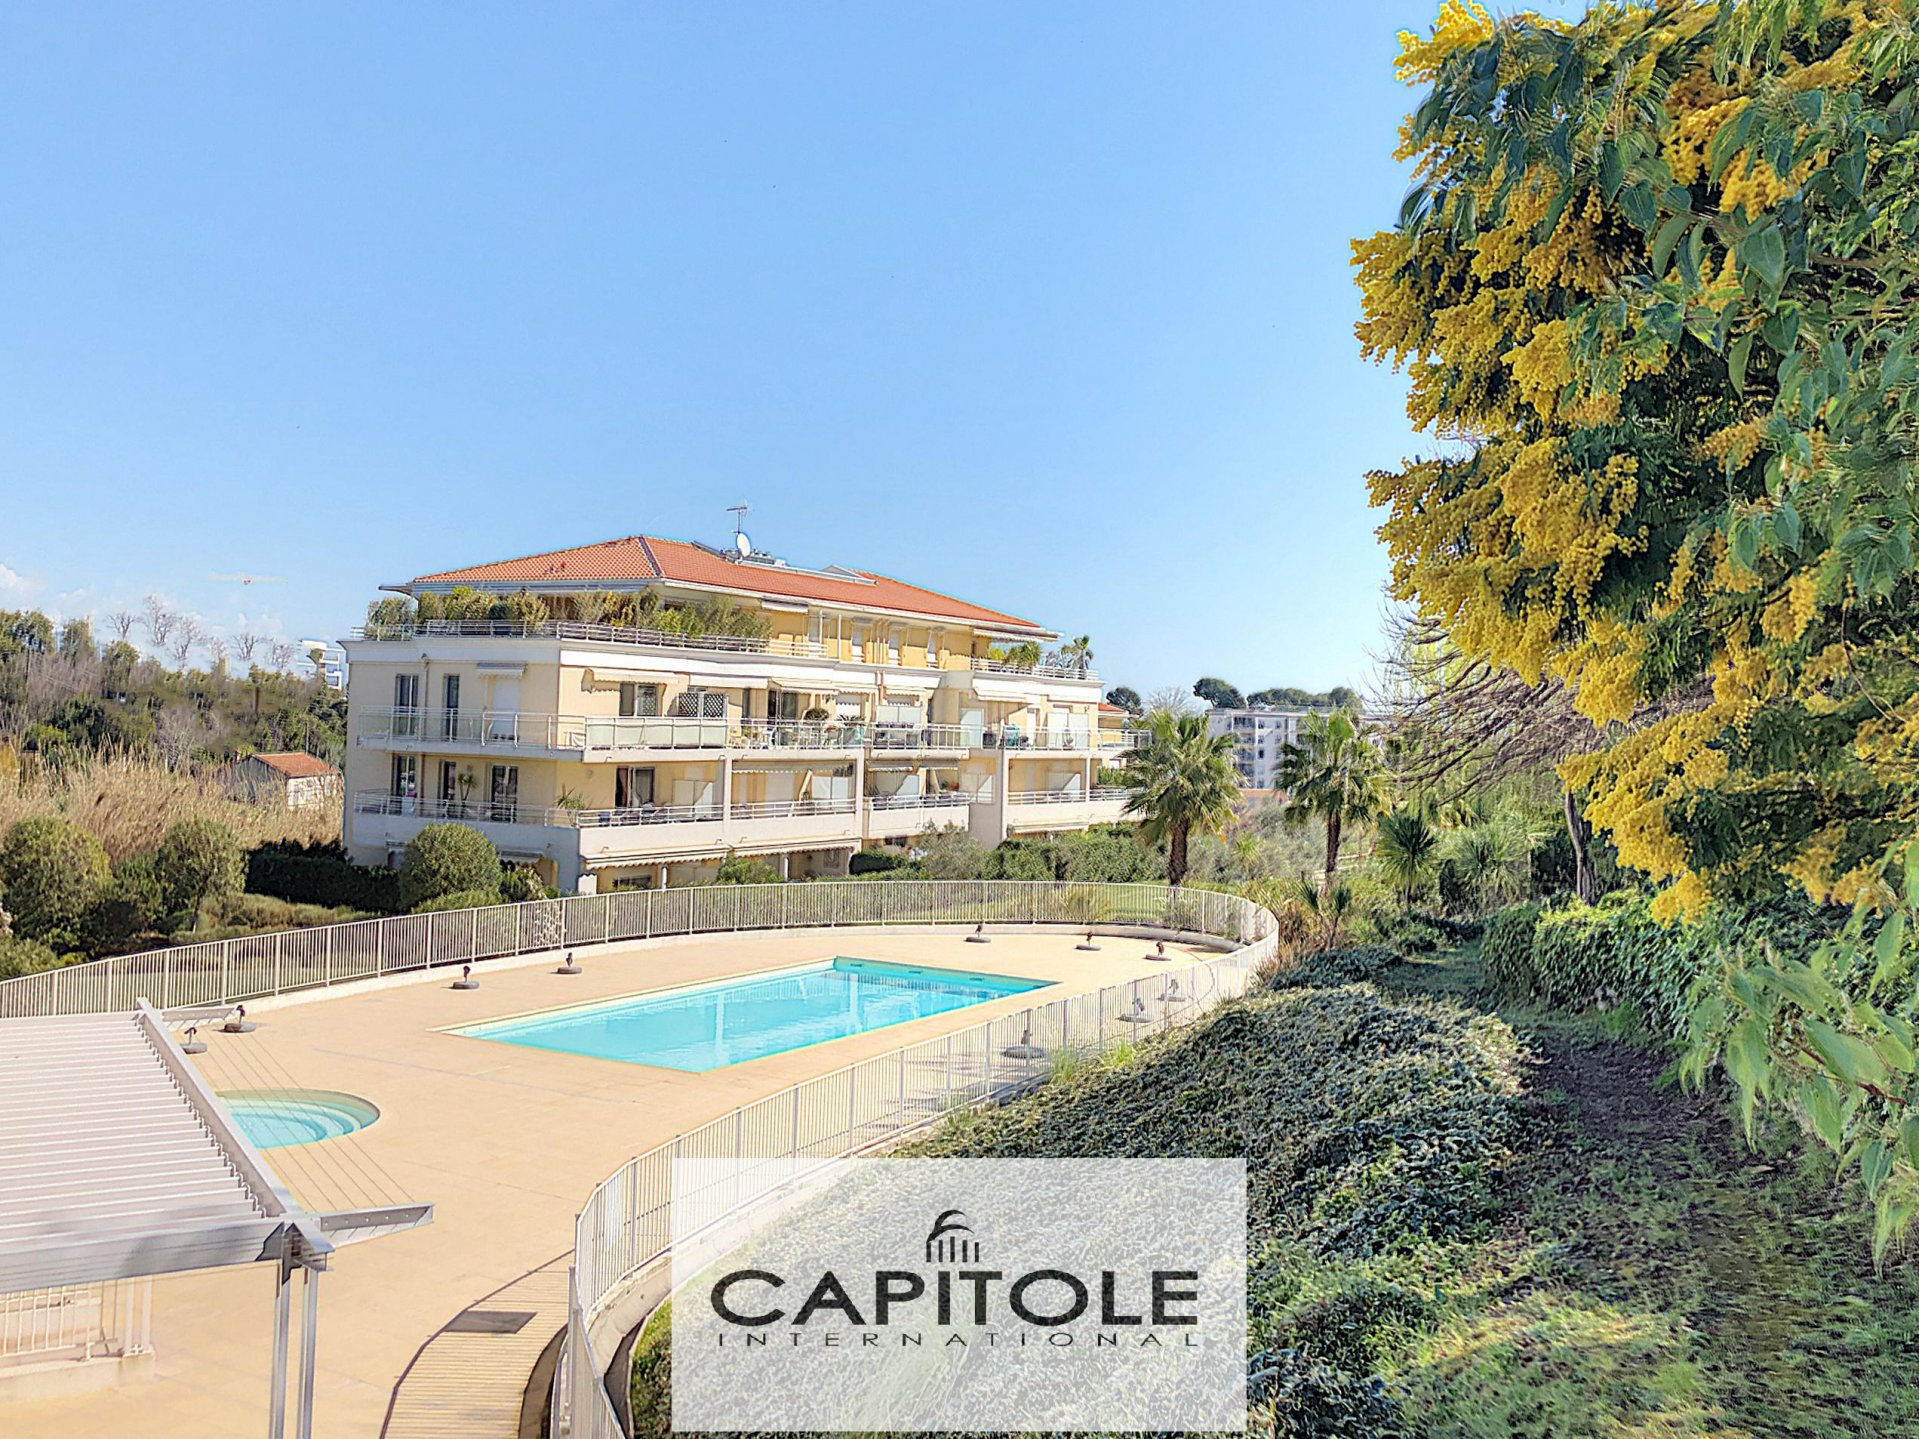 For sale, Antibes, sea view penthouse apartment 130m², 100 m² terrace, garages